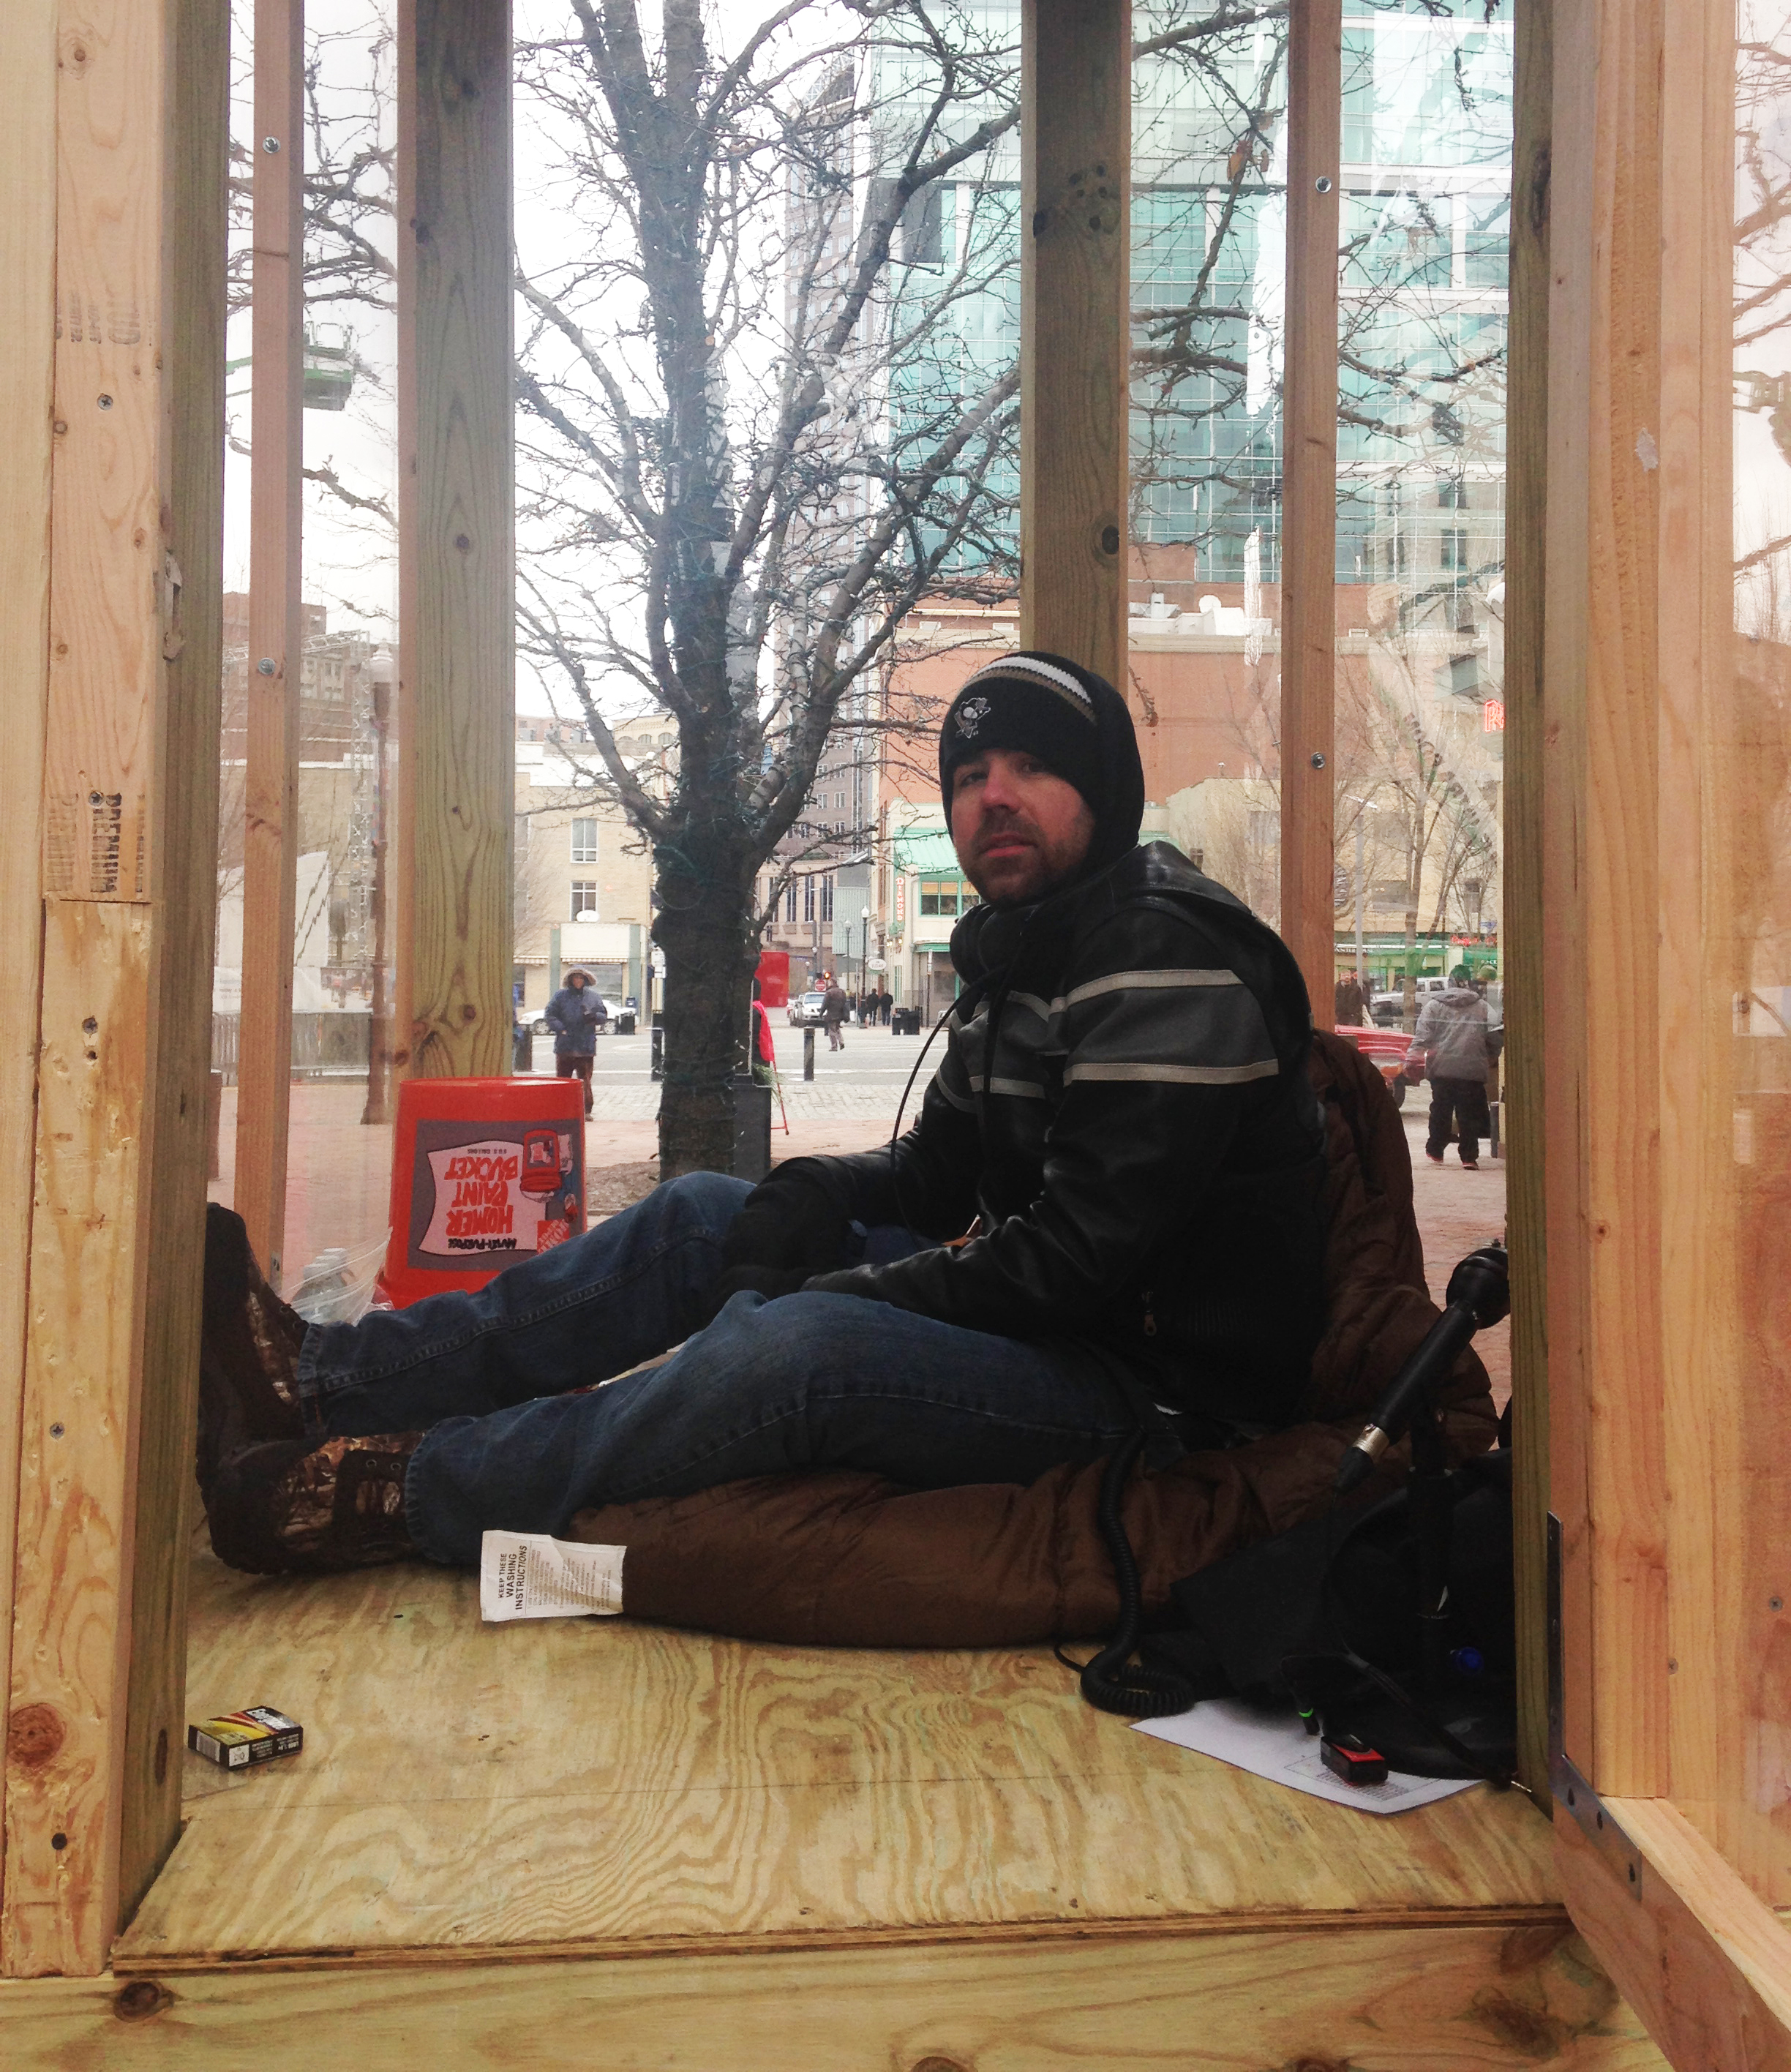 Why Is There A Man Living In A Box in Market Square, Pittsburgh?